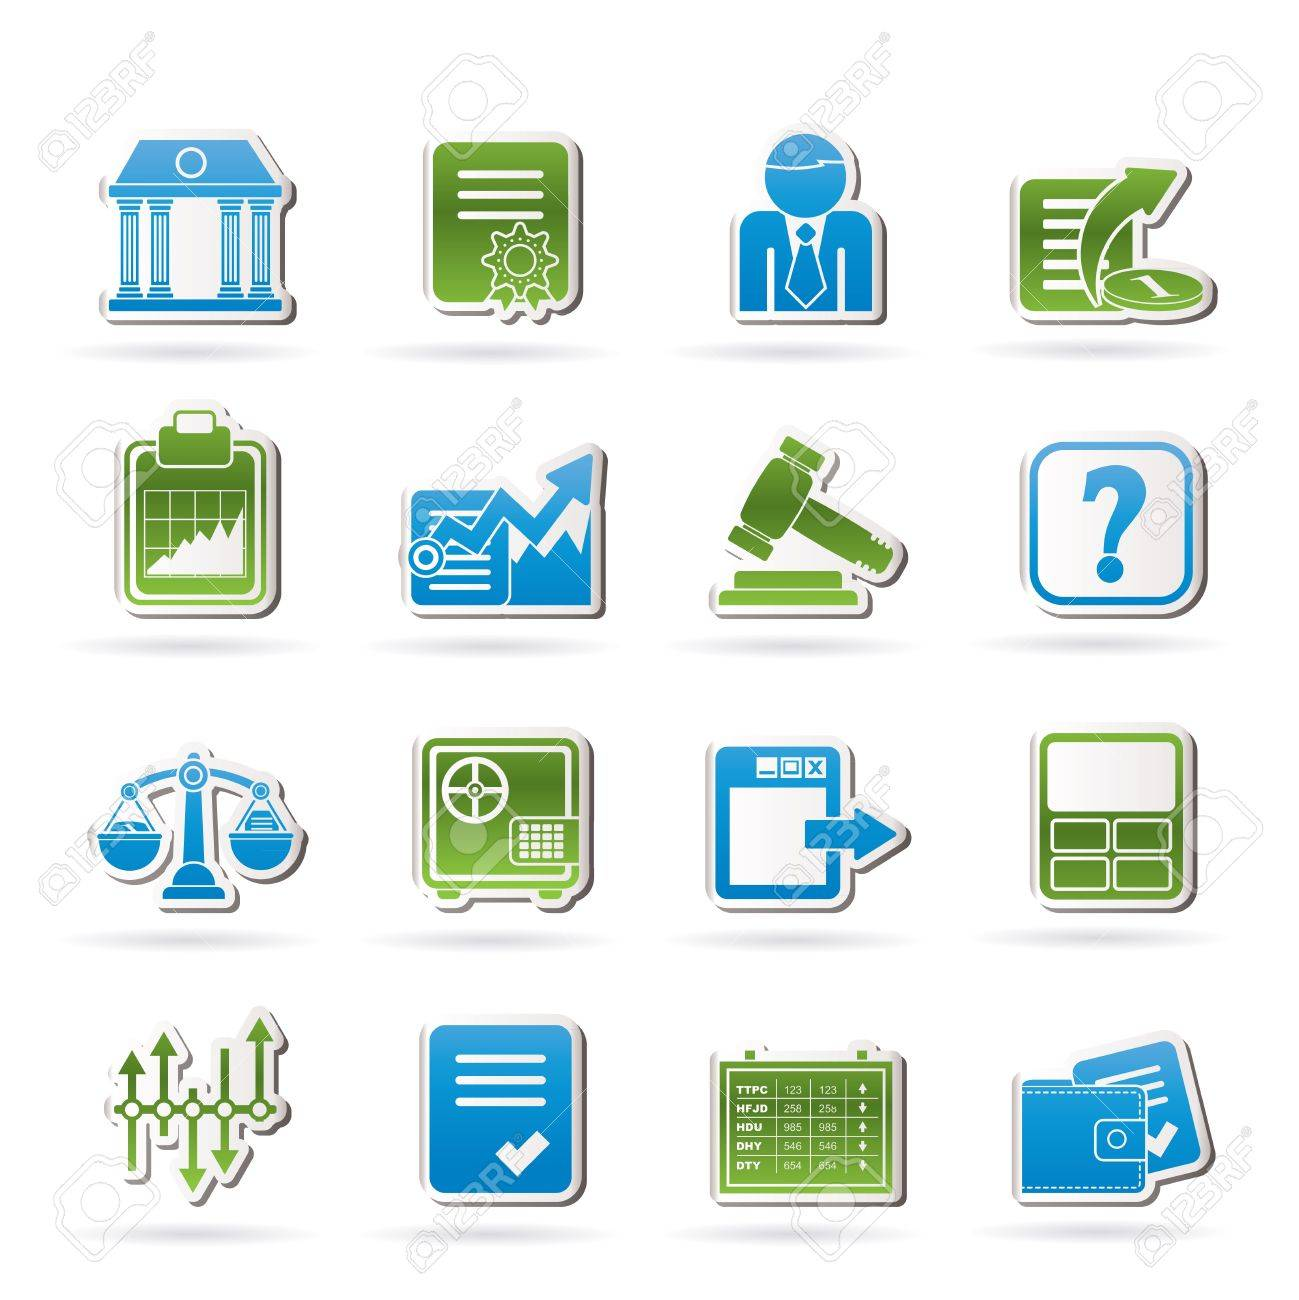 Stock exchange and finance icons - vector icon set Stock Vector - 12853148